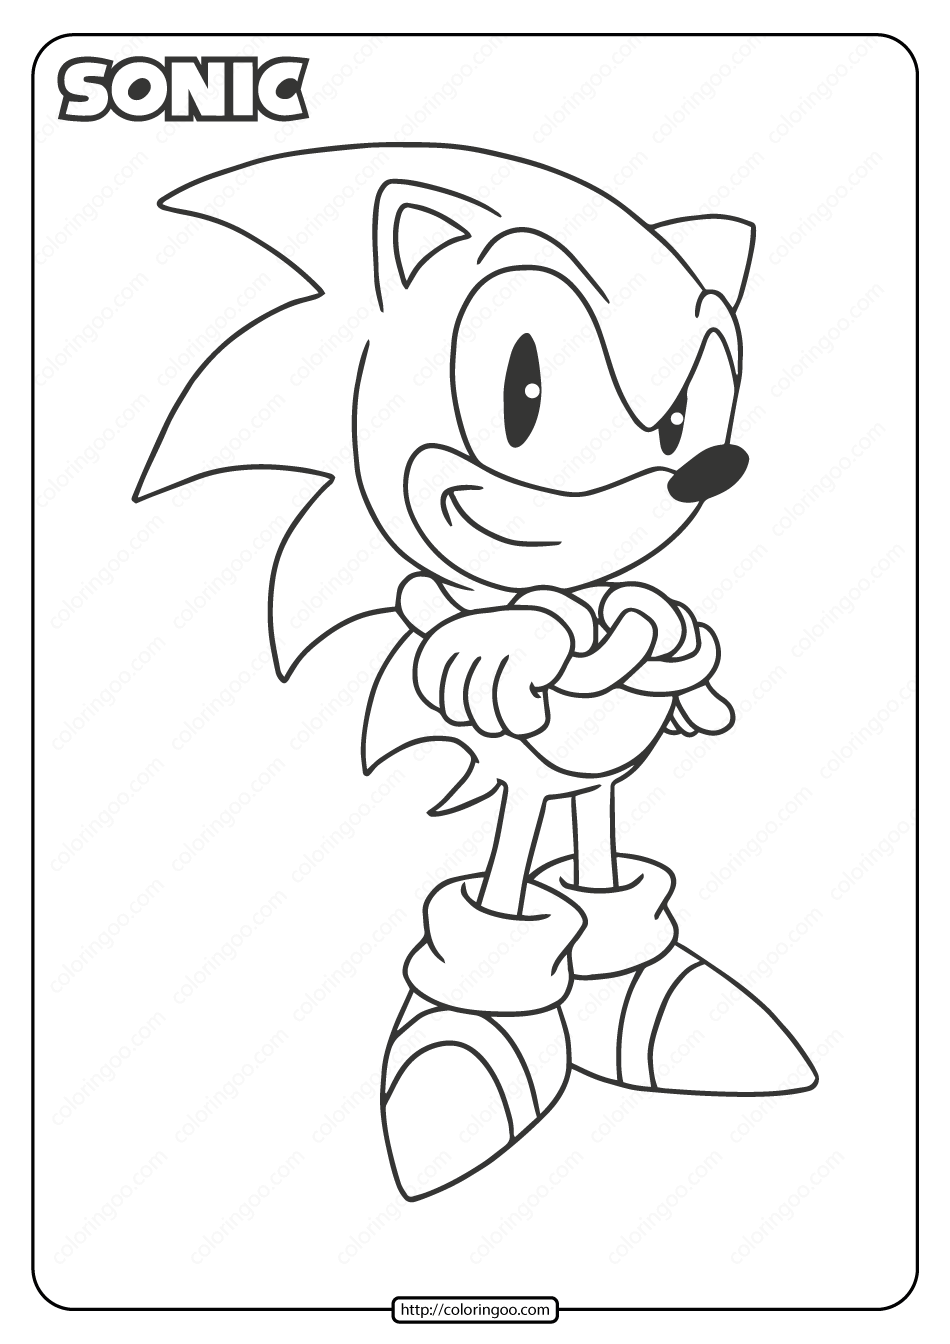 Easy Sonic Coloring Pages Ideas Printable Free Coloring Sheets Art Therapy Coloring Book Hedgehog Colors Free Printable Coloring Pages